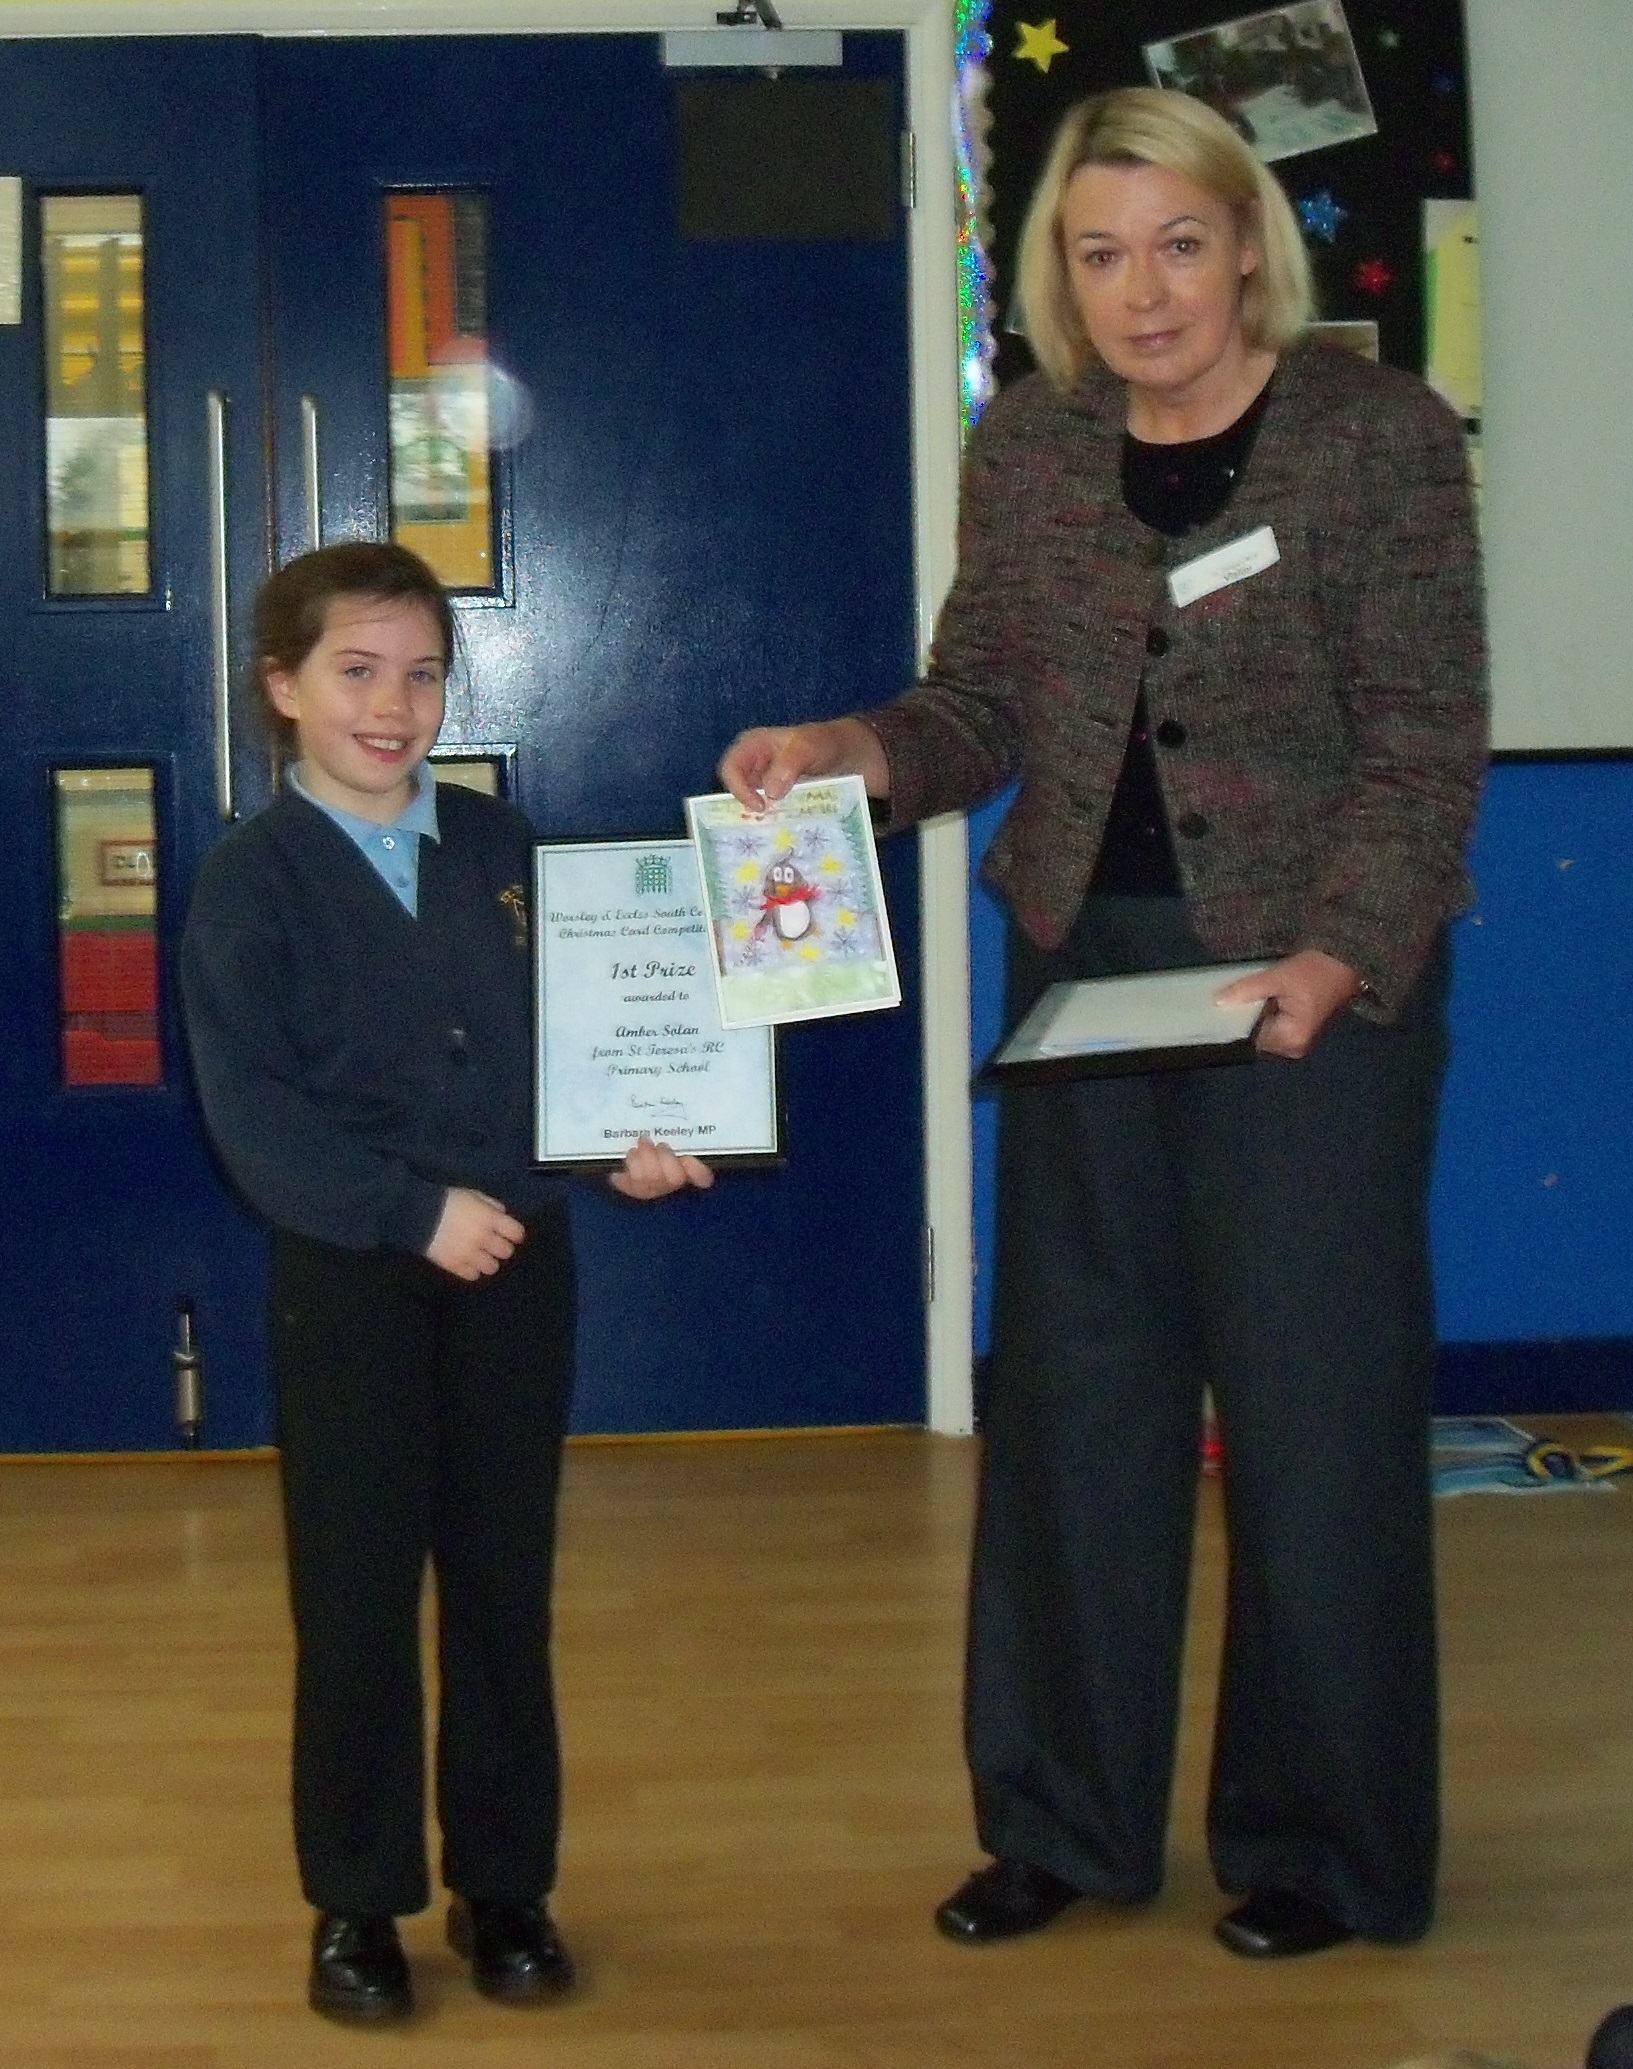 141219_Barbara_Keeley_MP_with_1st_prize_winner_Amber_Solan.jpg